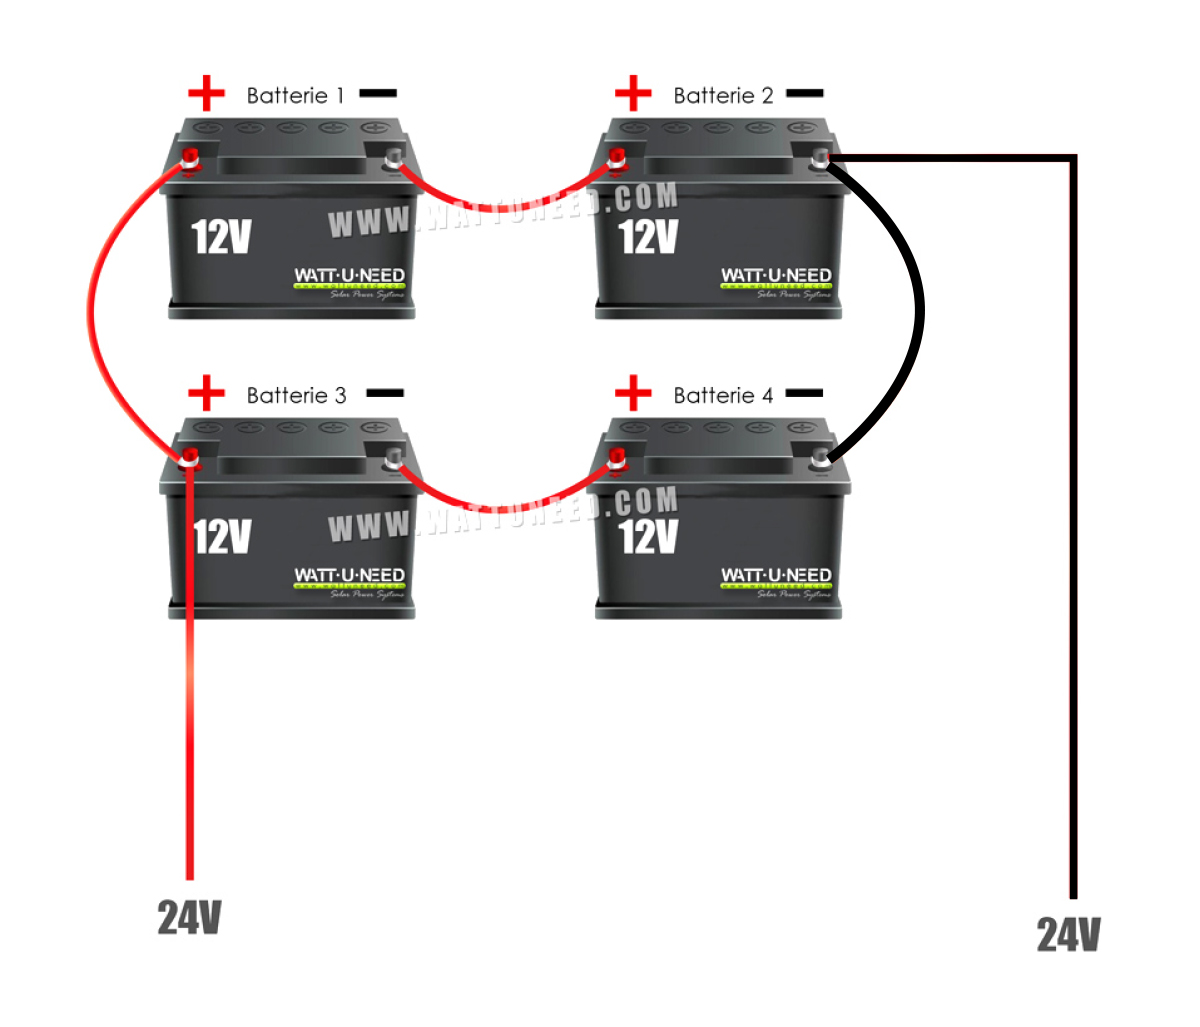 Connection of a fleet of 24V solar batteries